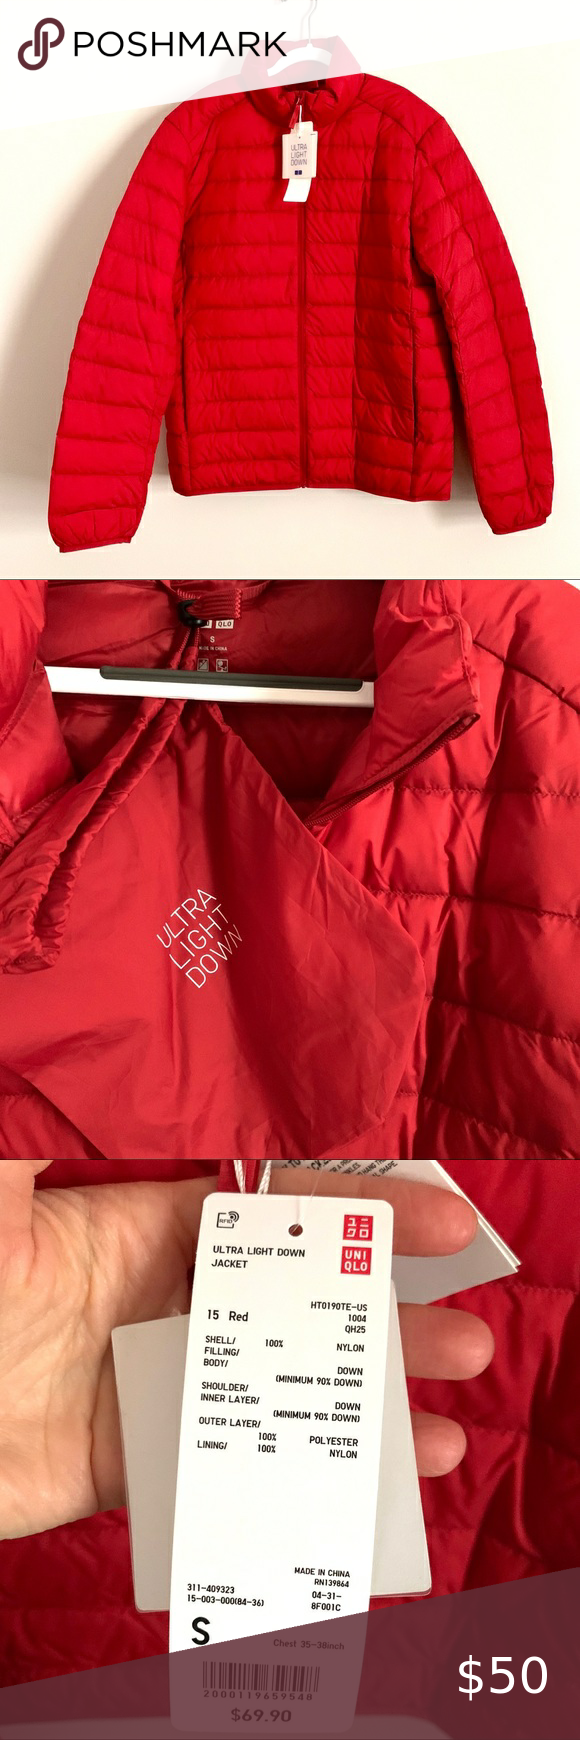 Uniqlo ultra light packable red down puffer jacket in 2020